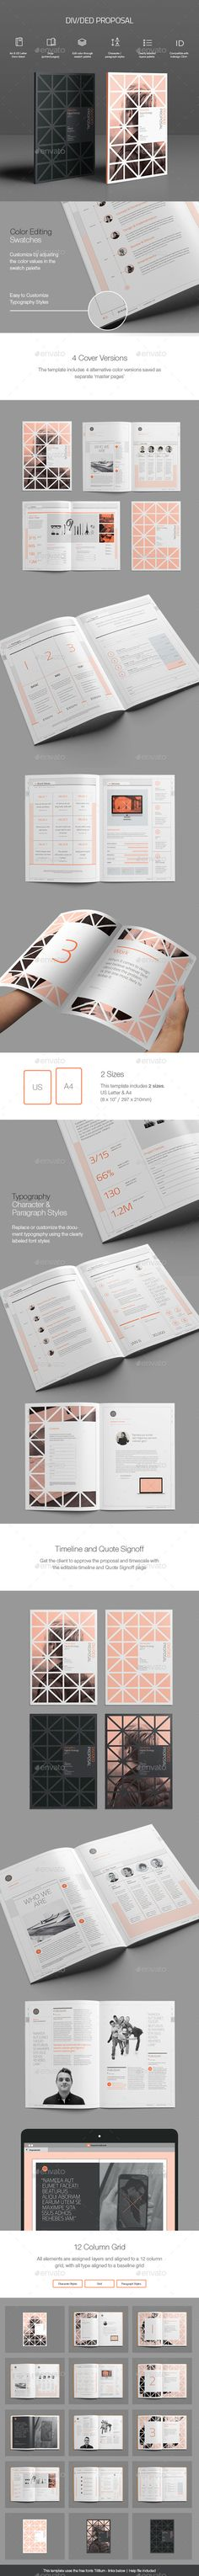 Divided Proposal Template - Proposals & Invoices Stationery